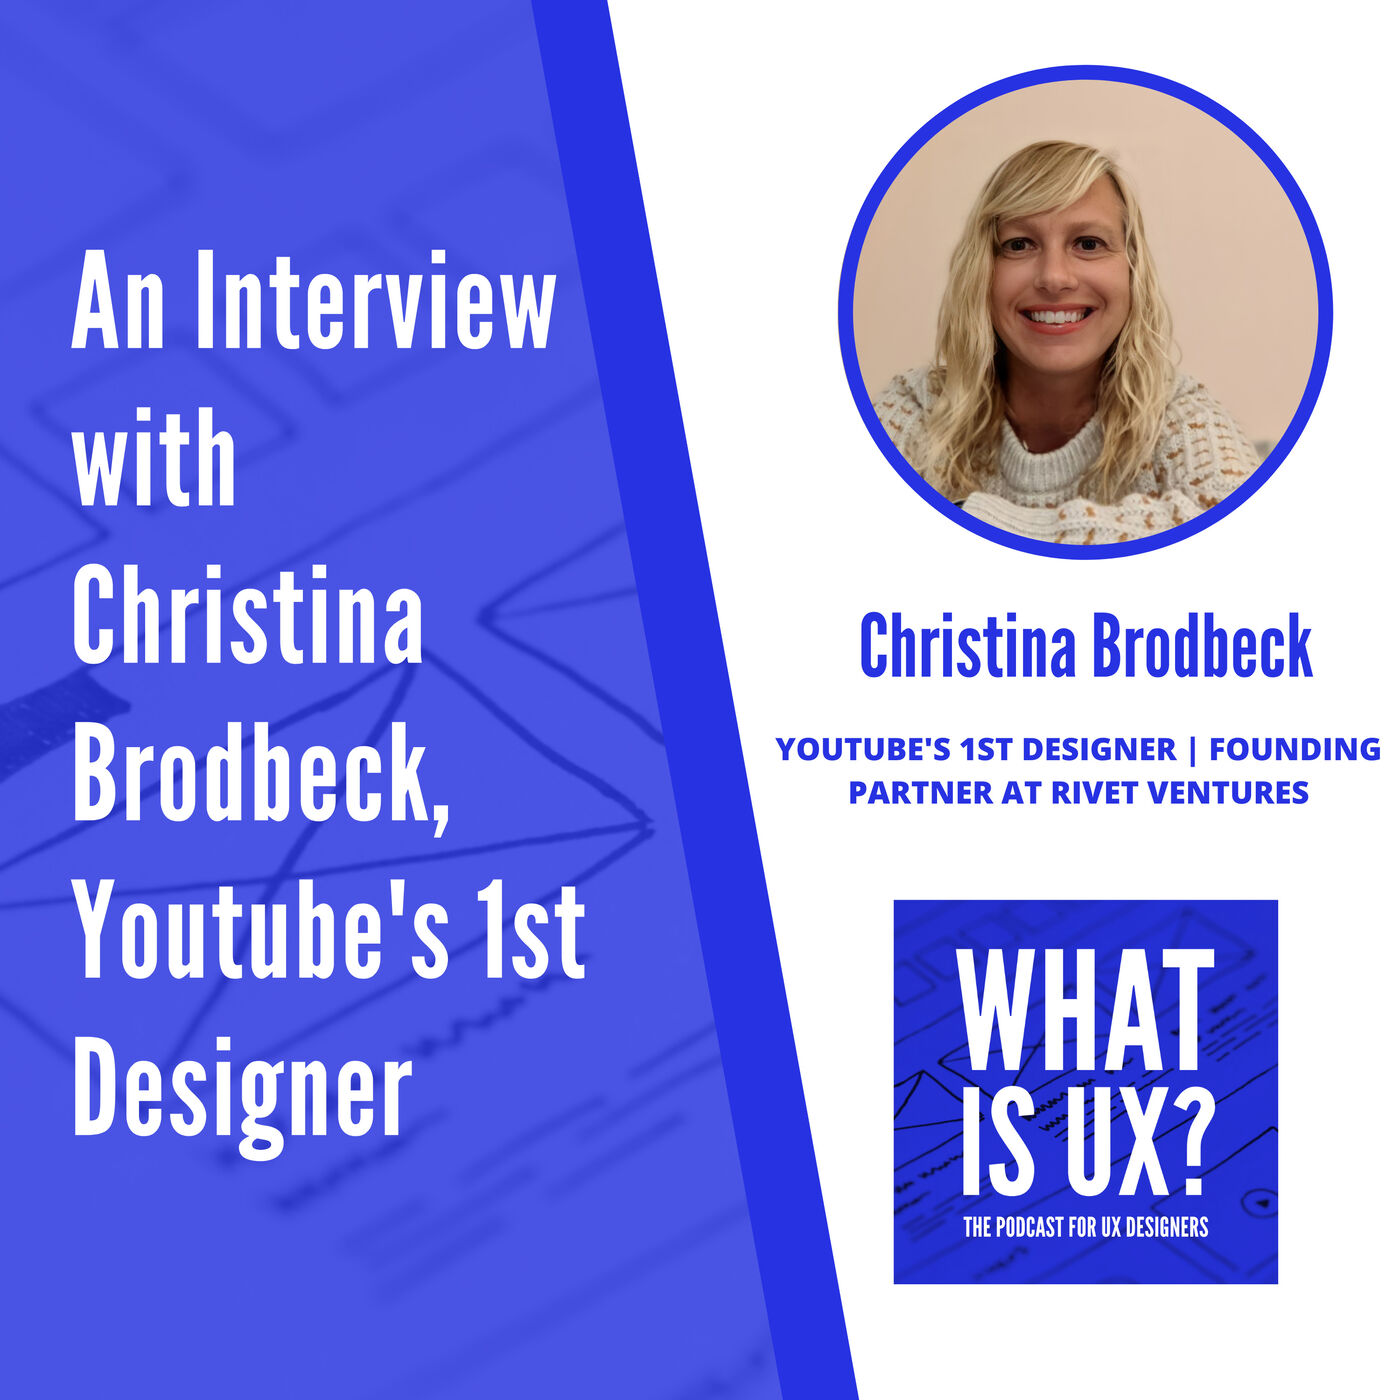 S2E1 An Interview with Christina Brodbeck, Youtube's 1st Designer